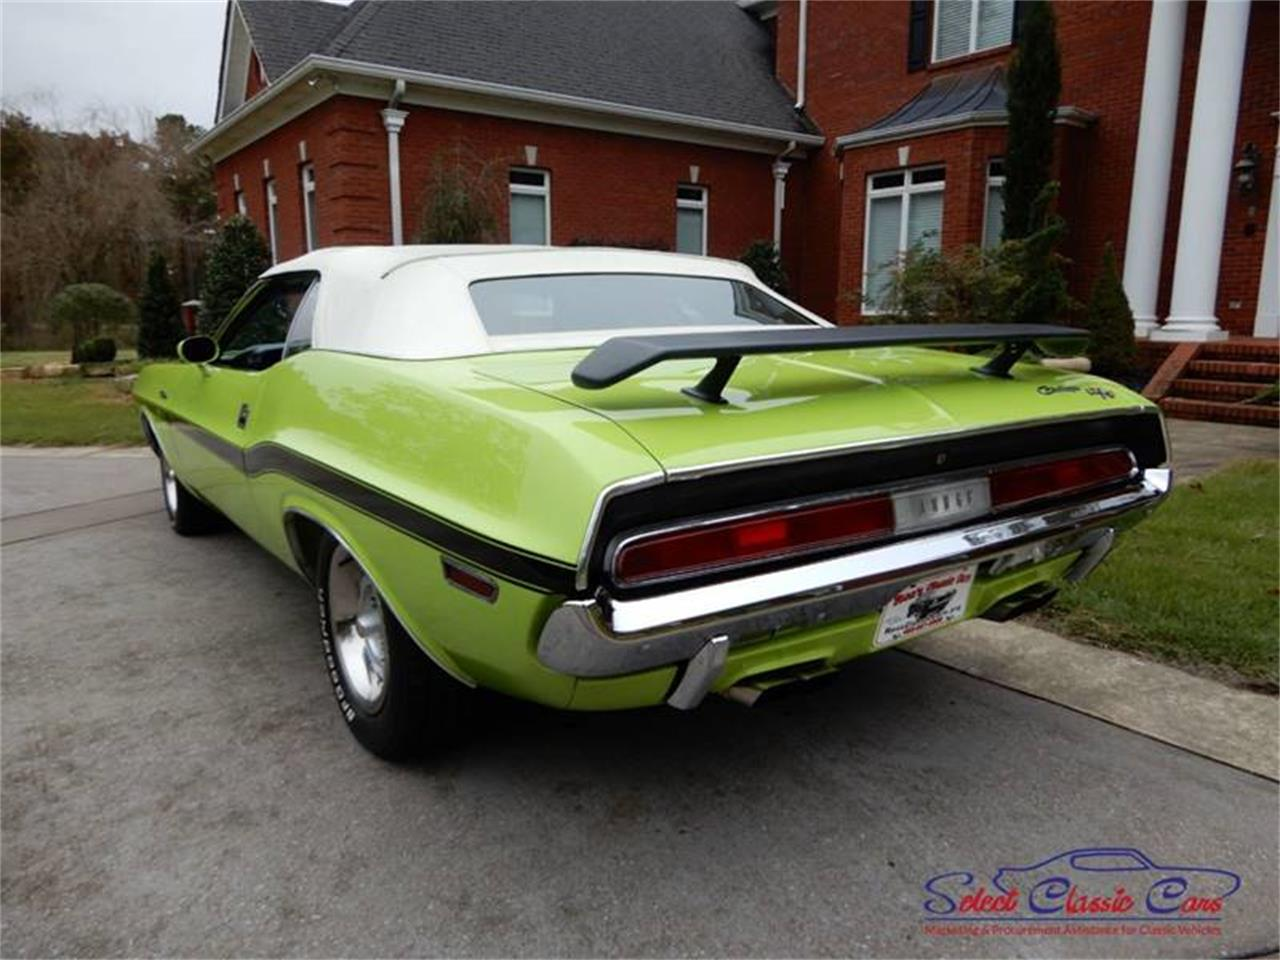 Large Picture of '70 Challenger located in Hiram Georgia - $125,000.00 Offered by Select Classic Cars - OW5E